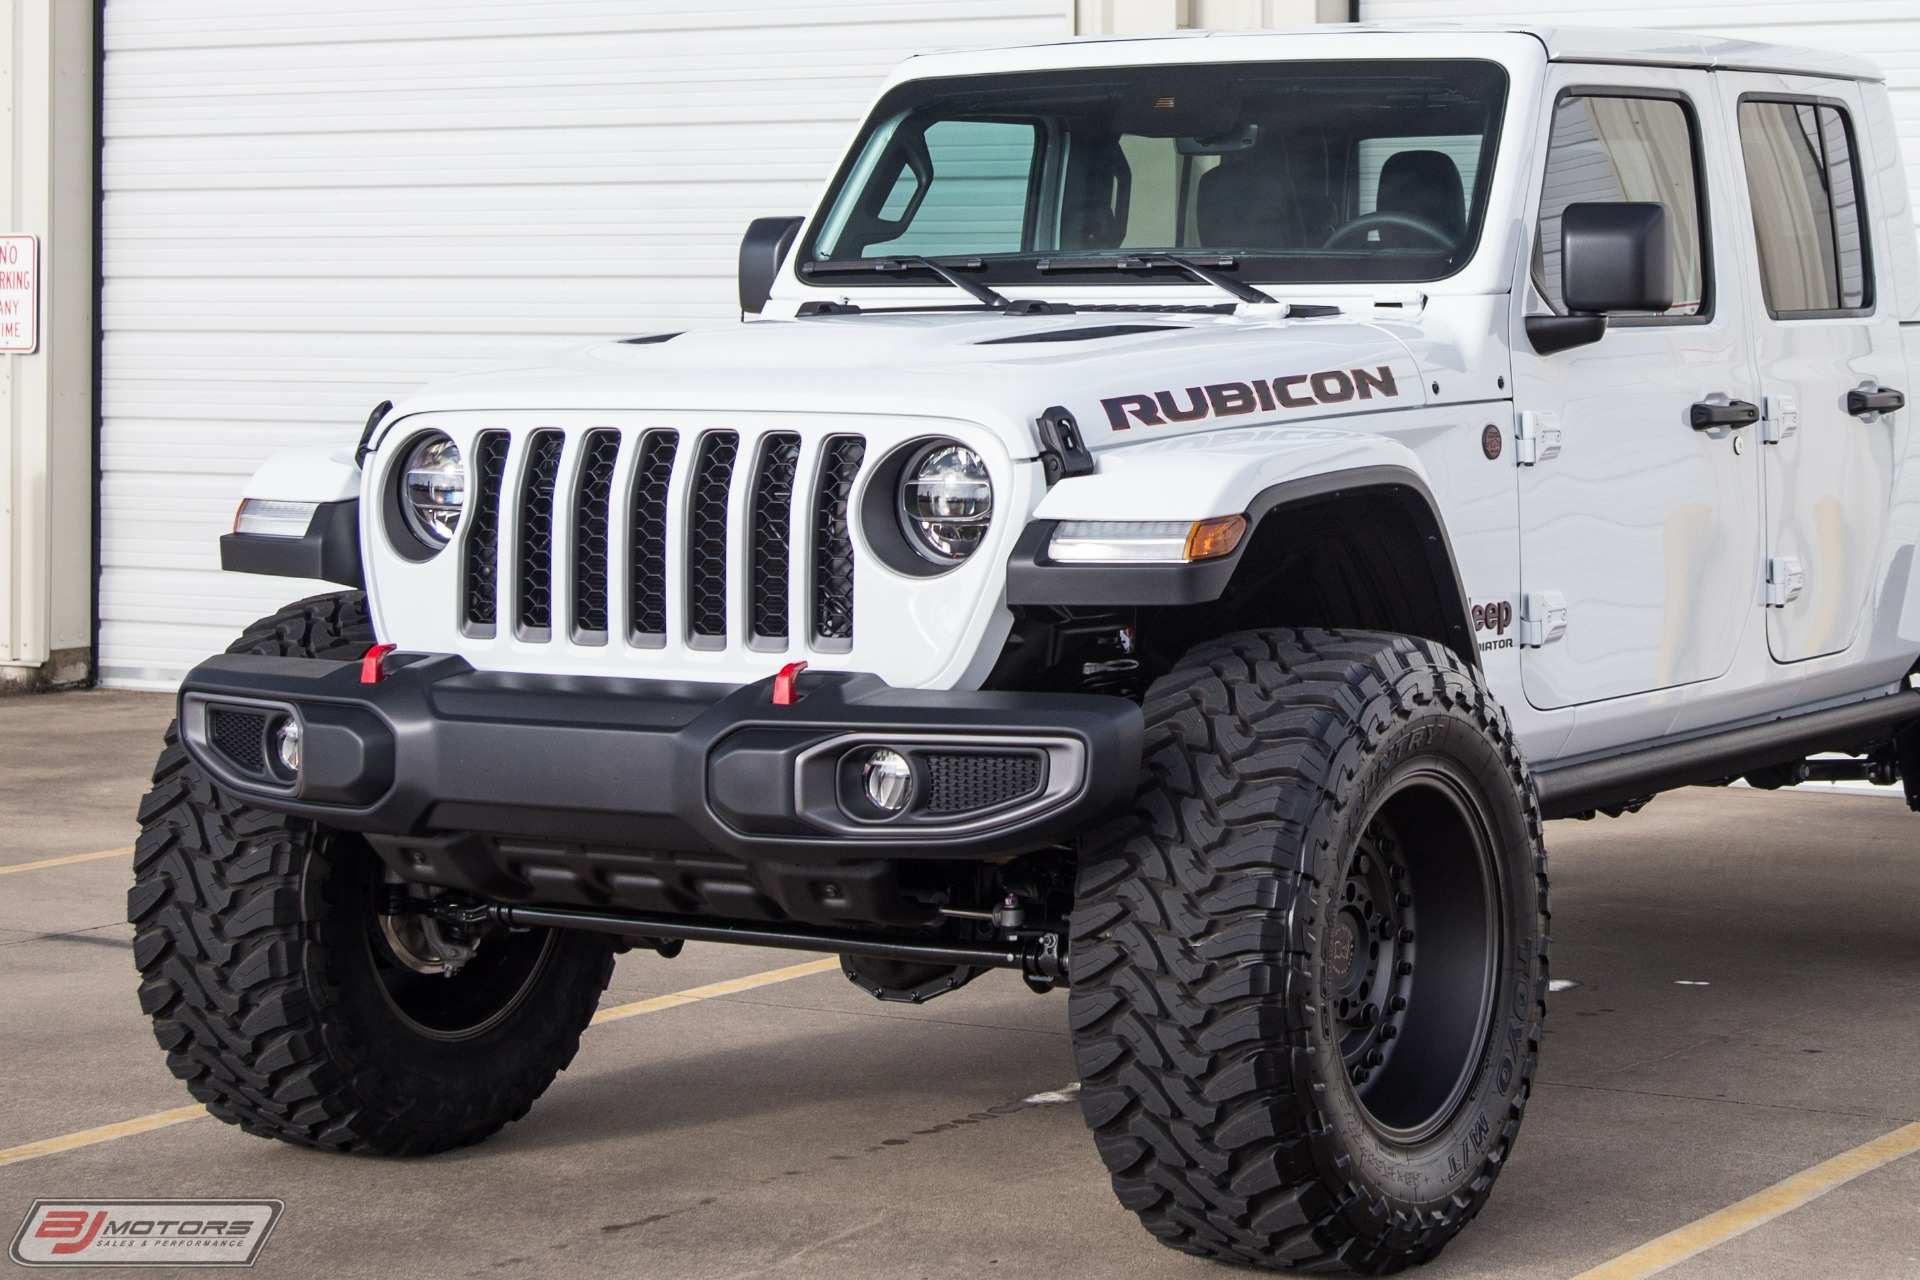 75 The Best 2020 Jeep Gladiator Lifted First Drive